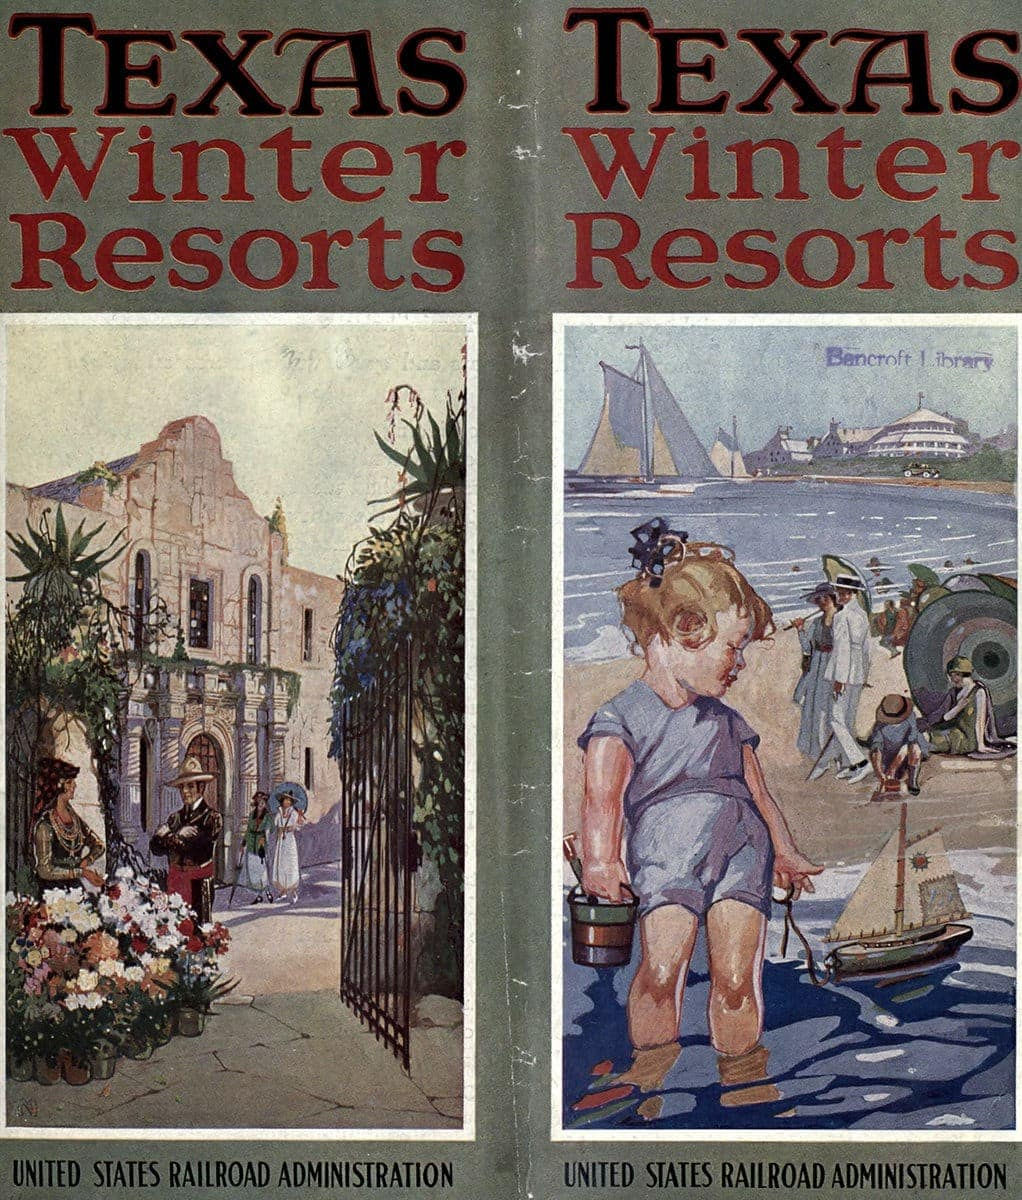 Texas winter resorts